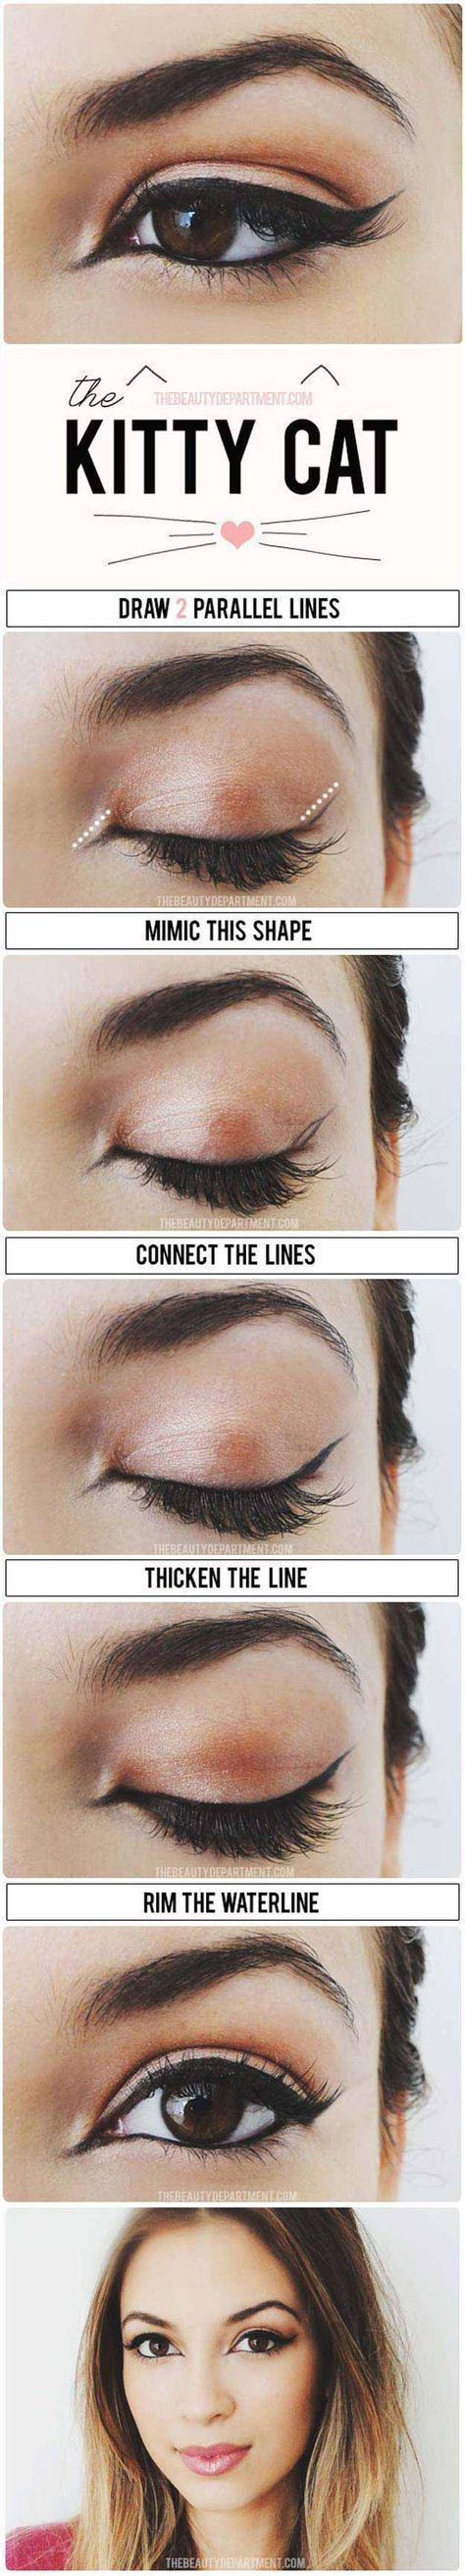 Winged Eyeliner Tutorials - The Cat Eye Stylized- Easy Step By Step Tutorials For Beginners and Hacks Using Tape and a Spoon, Liquid Liner, Thing Pencil Tricks and Awesome Guides for Hooded Eyes - Short Video Tutorial for Perfect Simple Dramatic Looks - thegoddess.com/winged-eyeliner-tutorials #wingedlinerhacks #wingedlinerforhoodedeyes